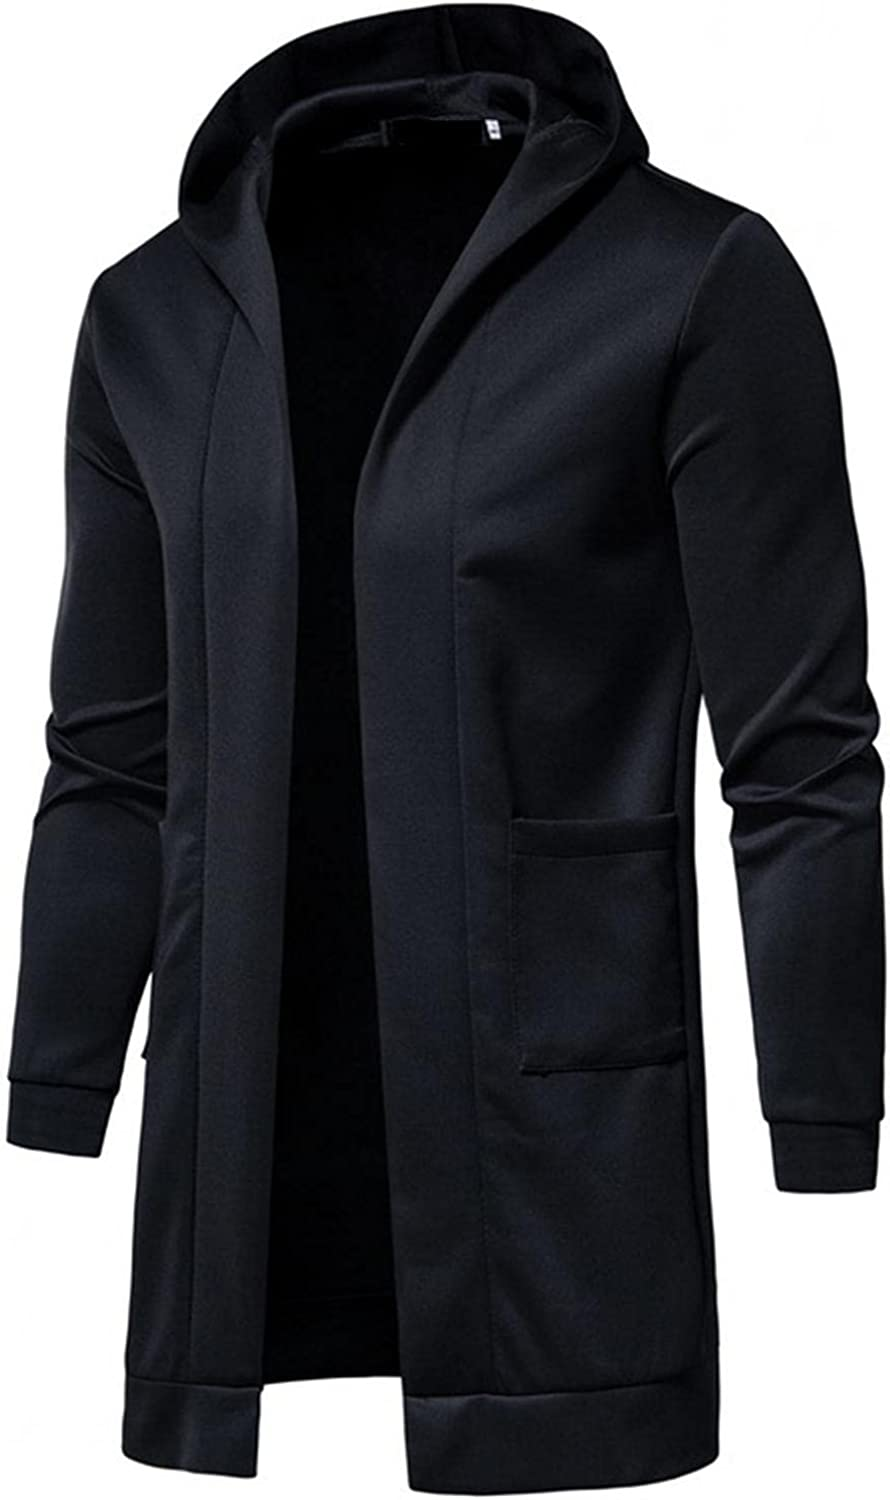 TEVEQ safety Men's Solid Color Long Hooded Windbreaker Ranking TOP3 Sleeved Coats